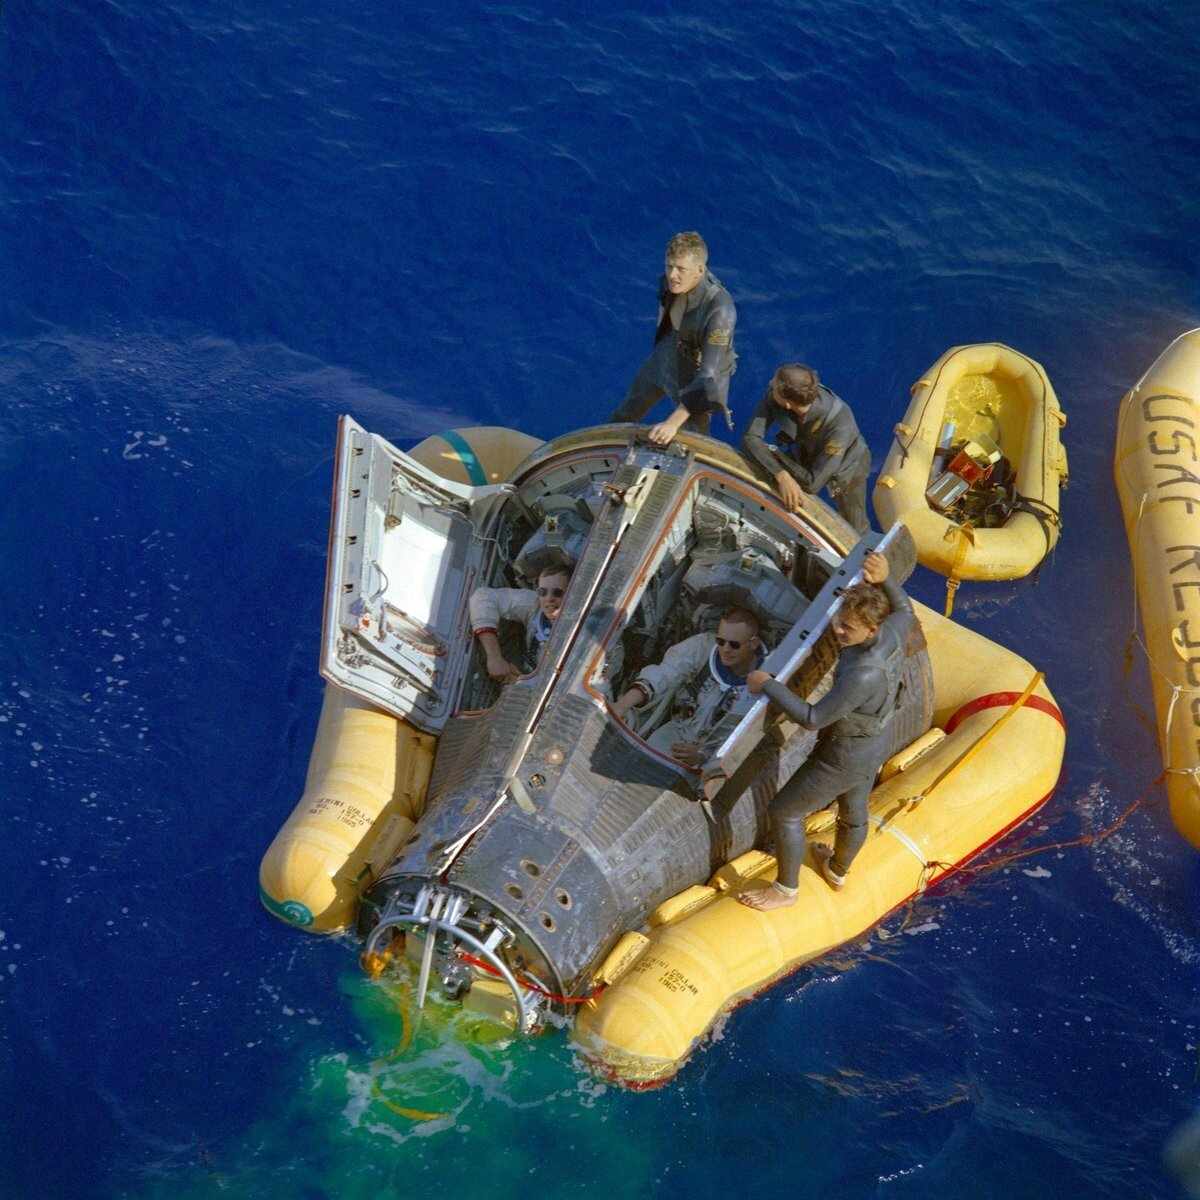 Neil Armstrong and David Scott looking badass as their Gemini 8 Capsule is being recovered, 1966